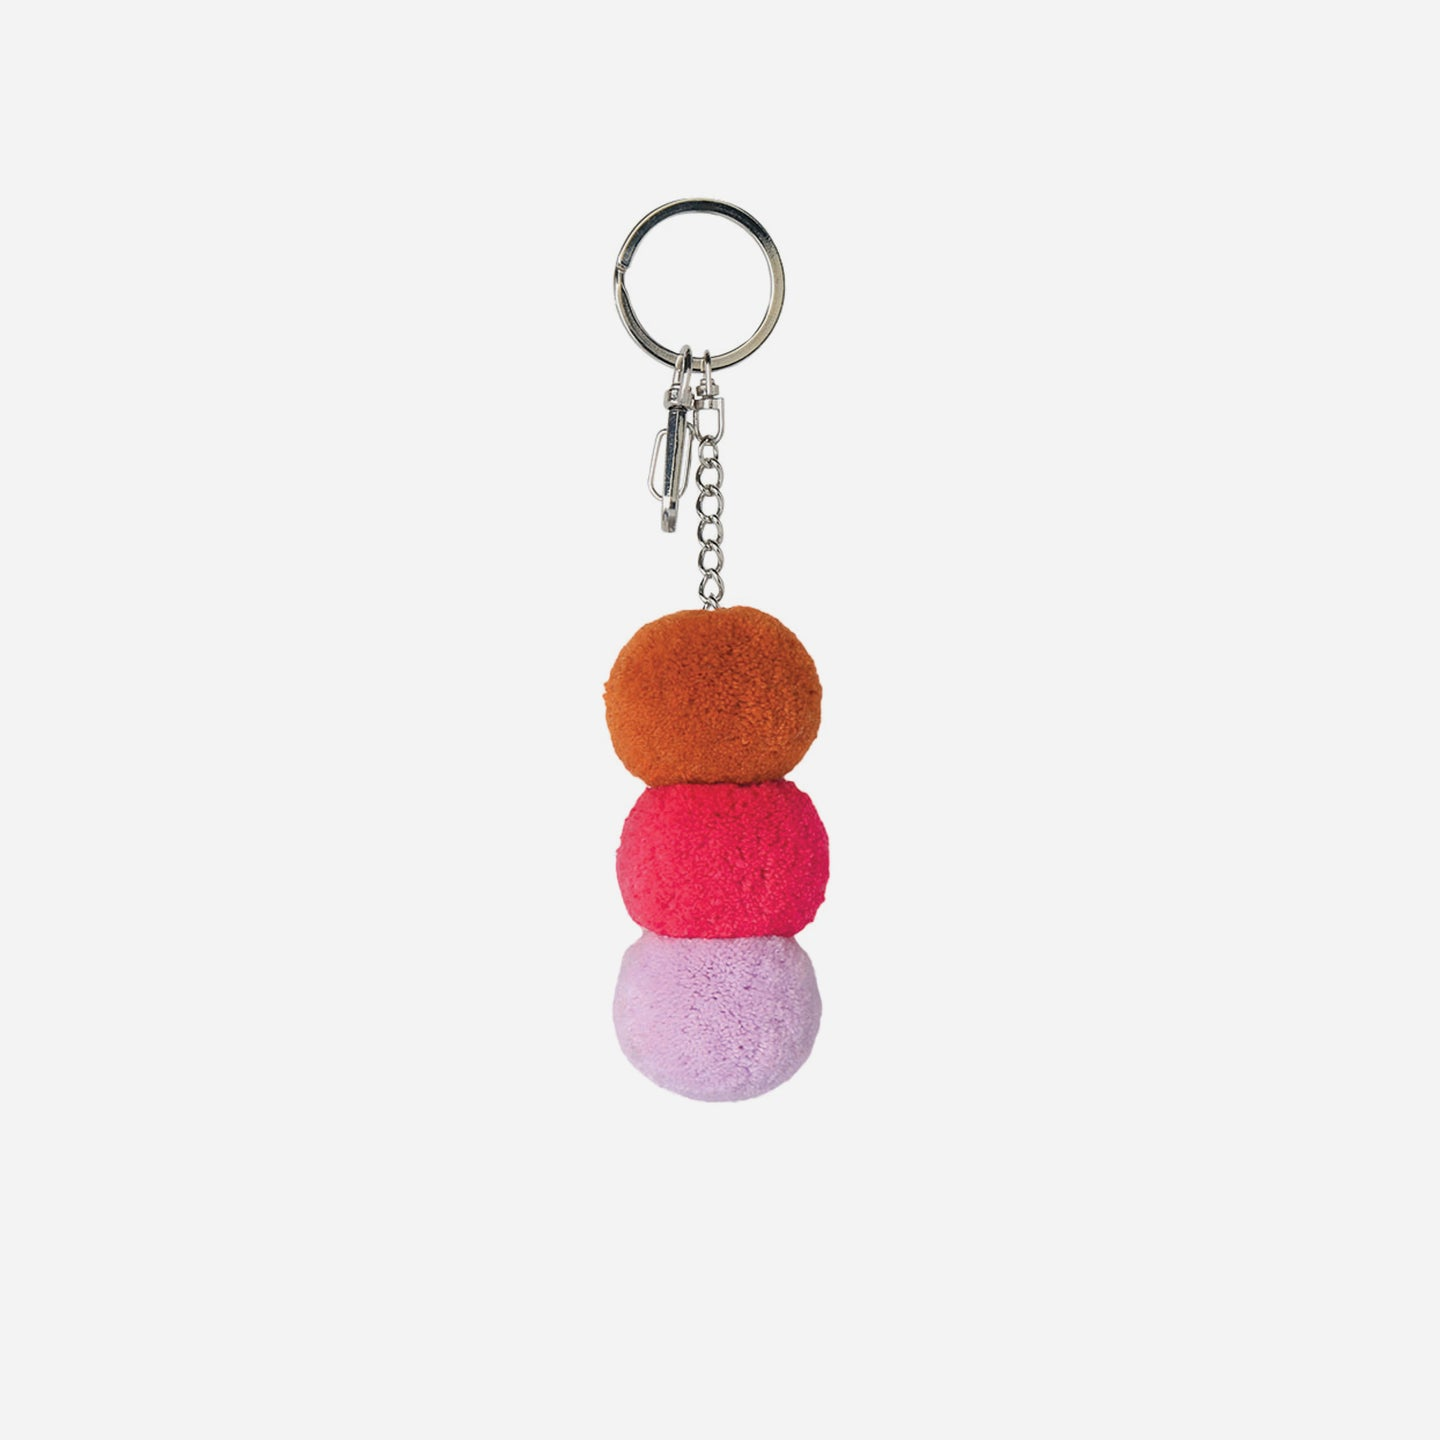 Stacked Pom Key Chain Charm